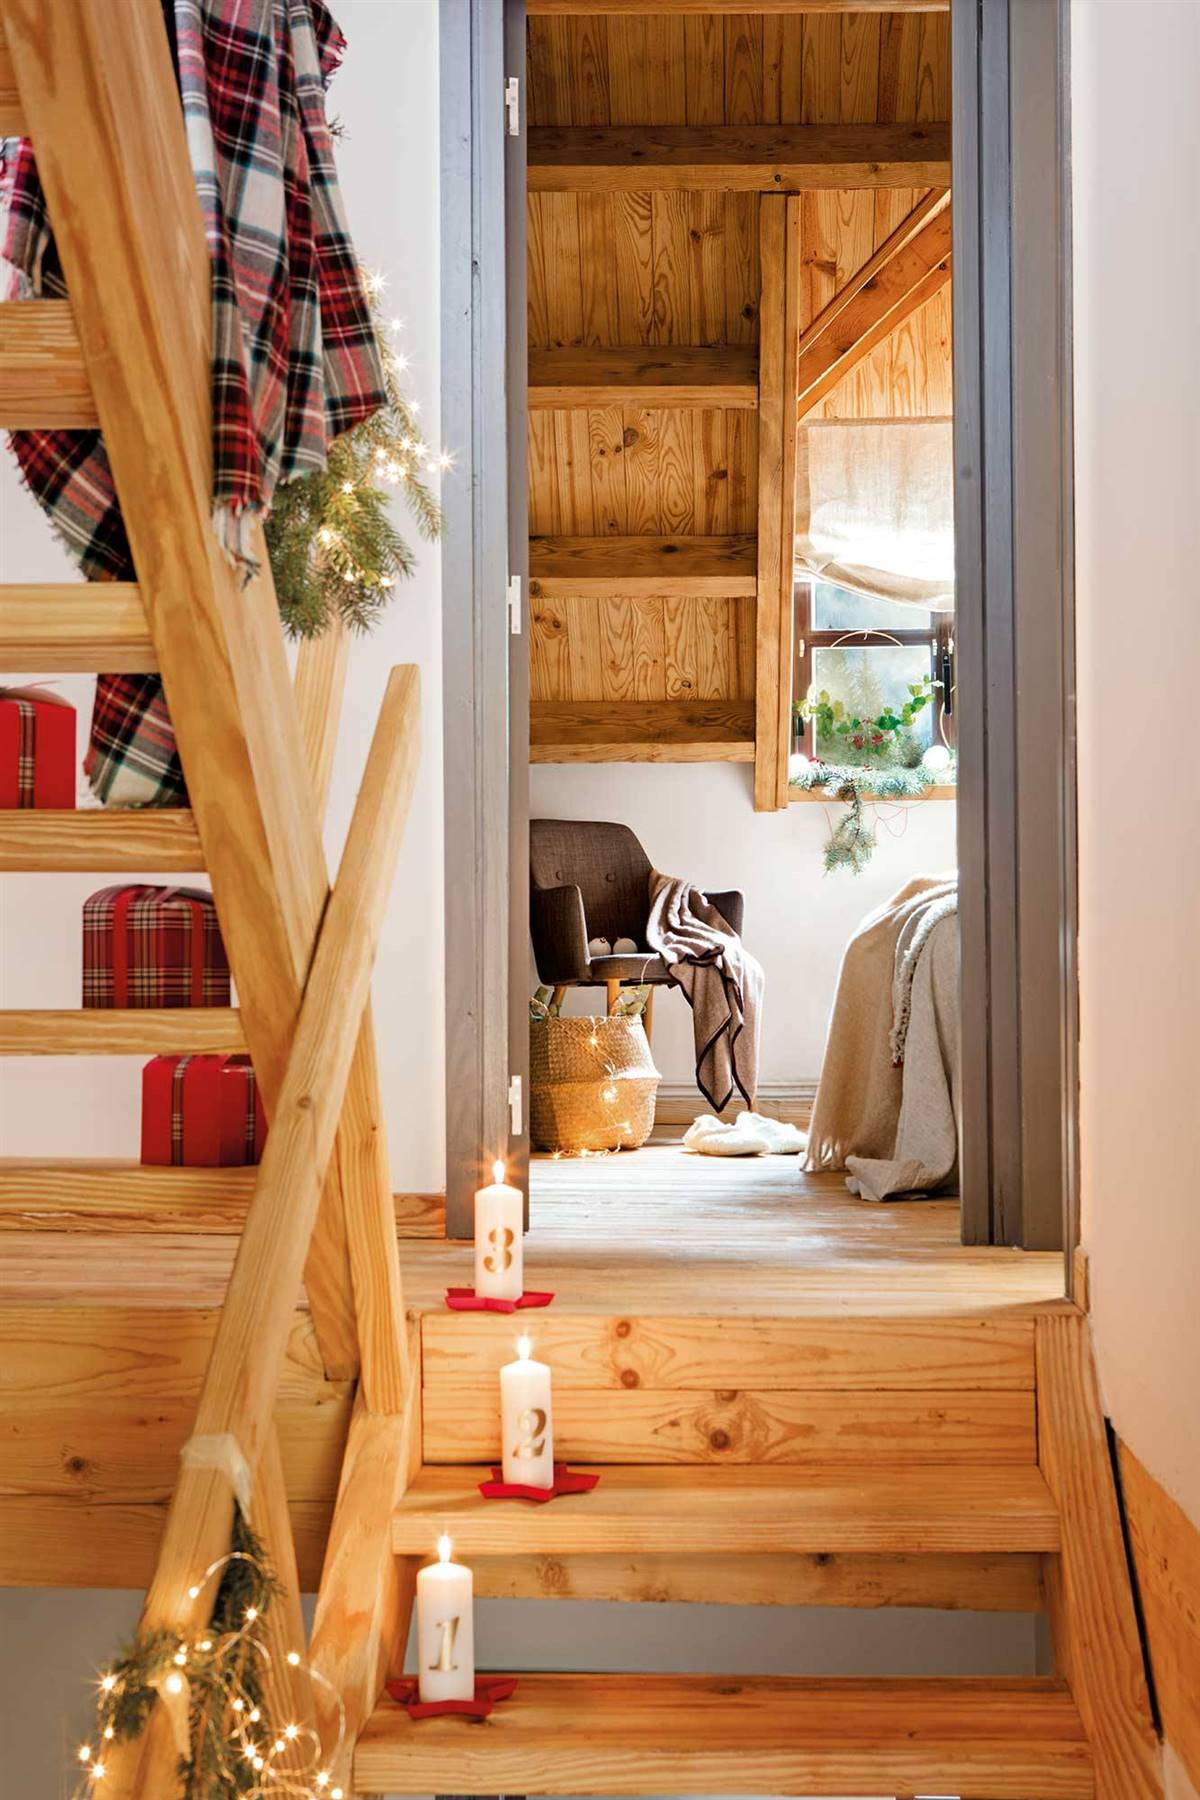 CANDLES, GARLANDS AND GIFTS TO DECORATE INTERIOR STAIRS